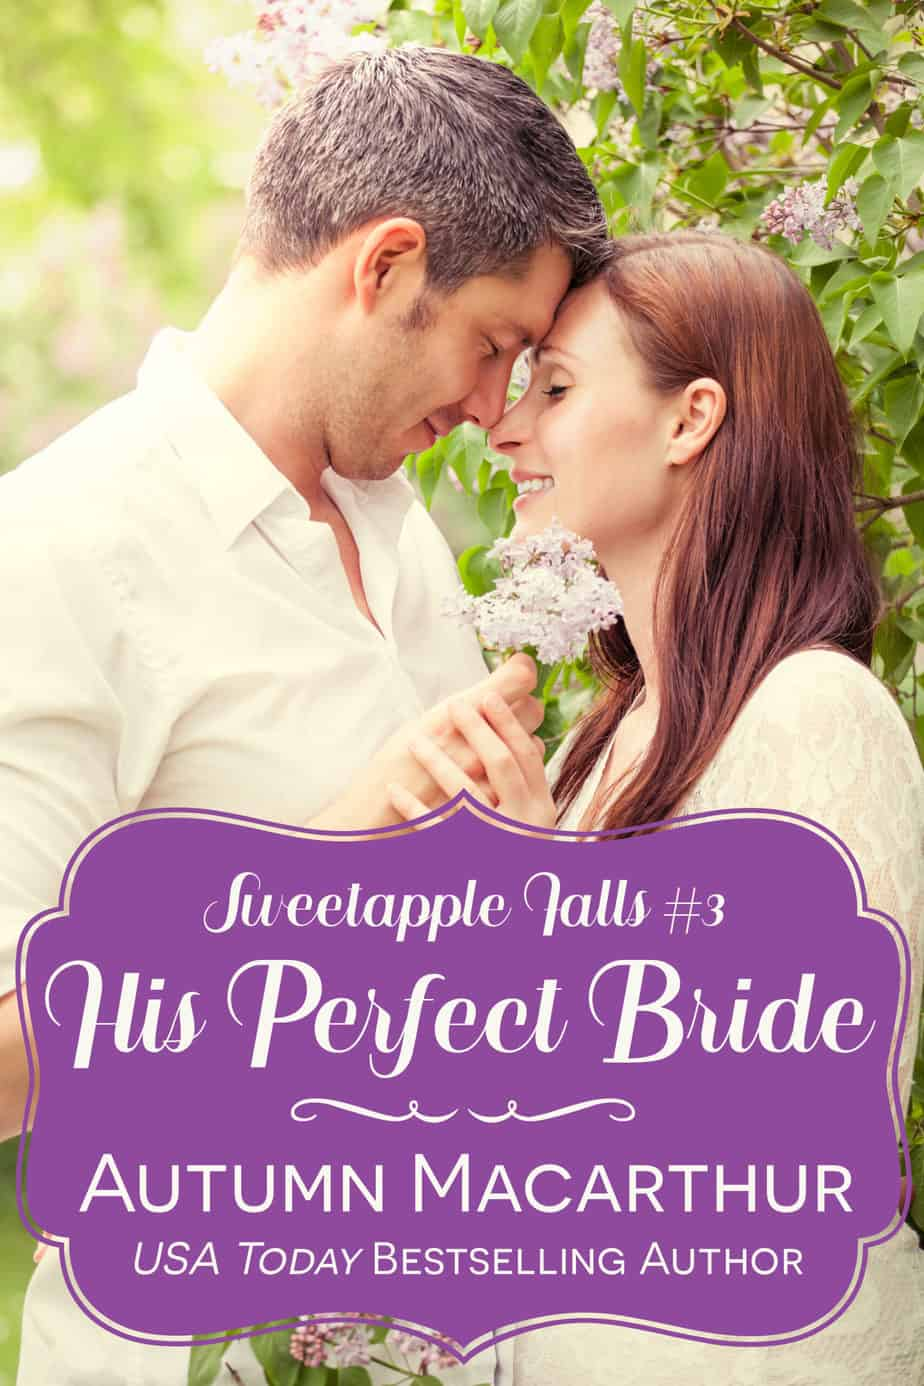 Cover image for His Perfect Bride, book 3 in the Sweetapple Falls small-town Christian romance series